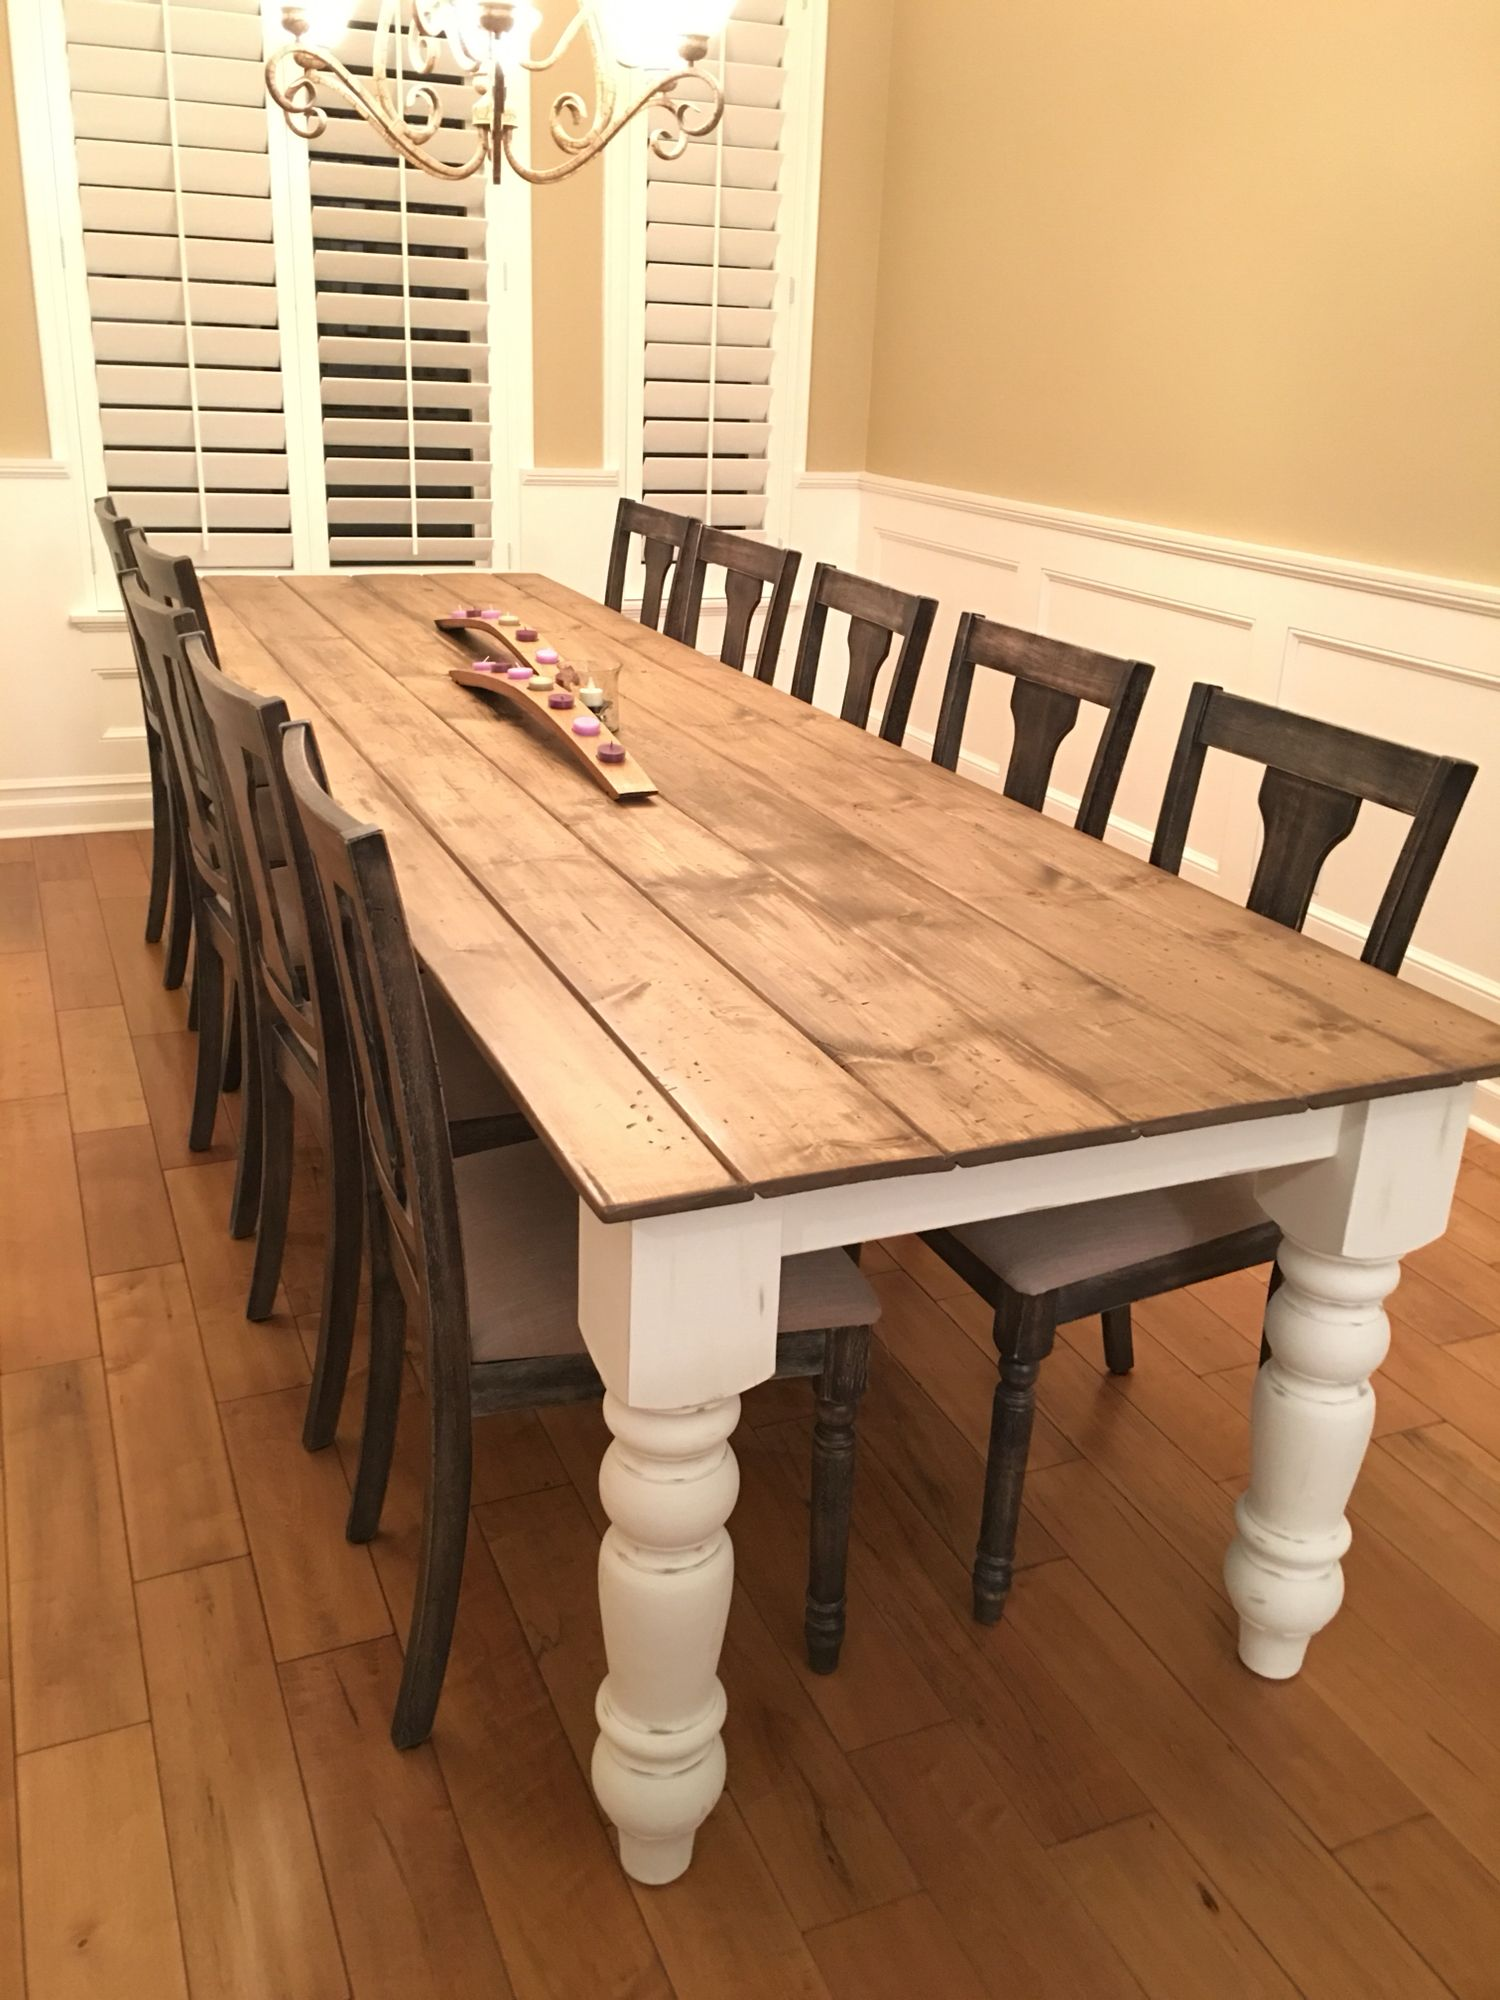 DIY FARMHOUSE TABLE. My husband made my 10 foot 8 inch ...